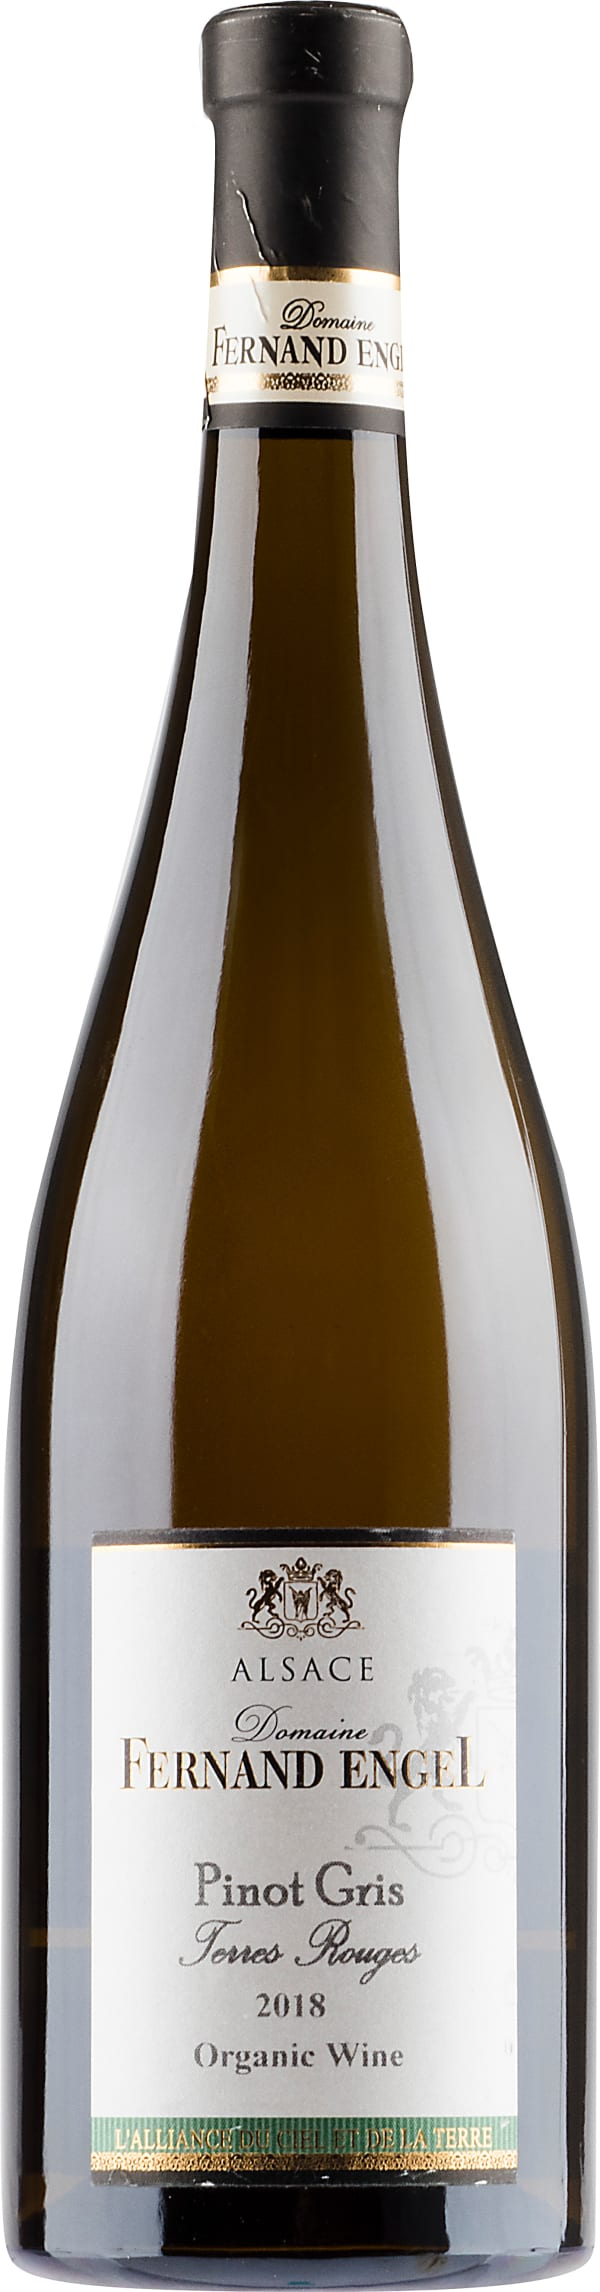 Fernand Engel Pinot Gris Terres Rouges Organic 2018